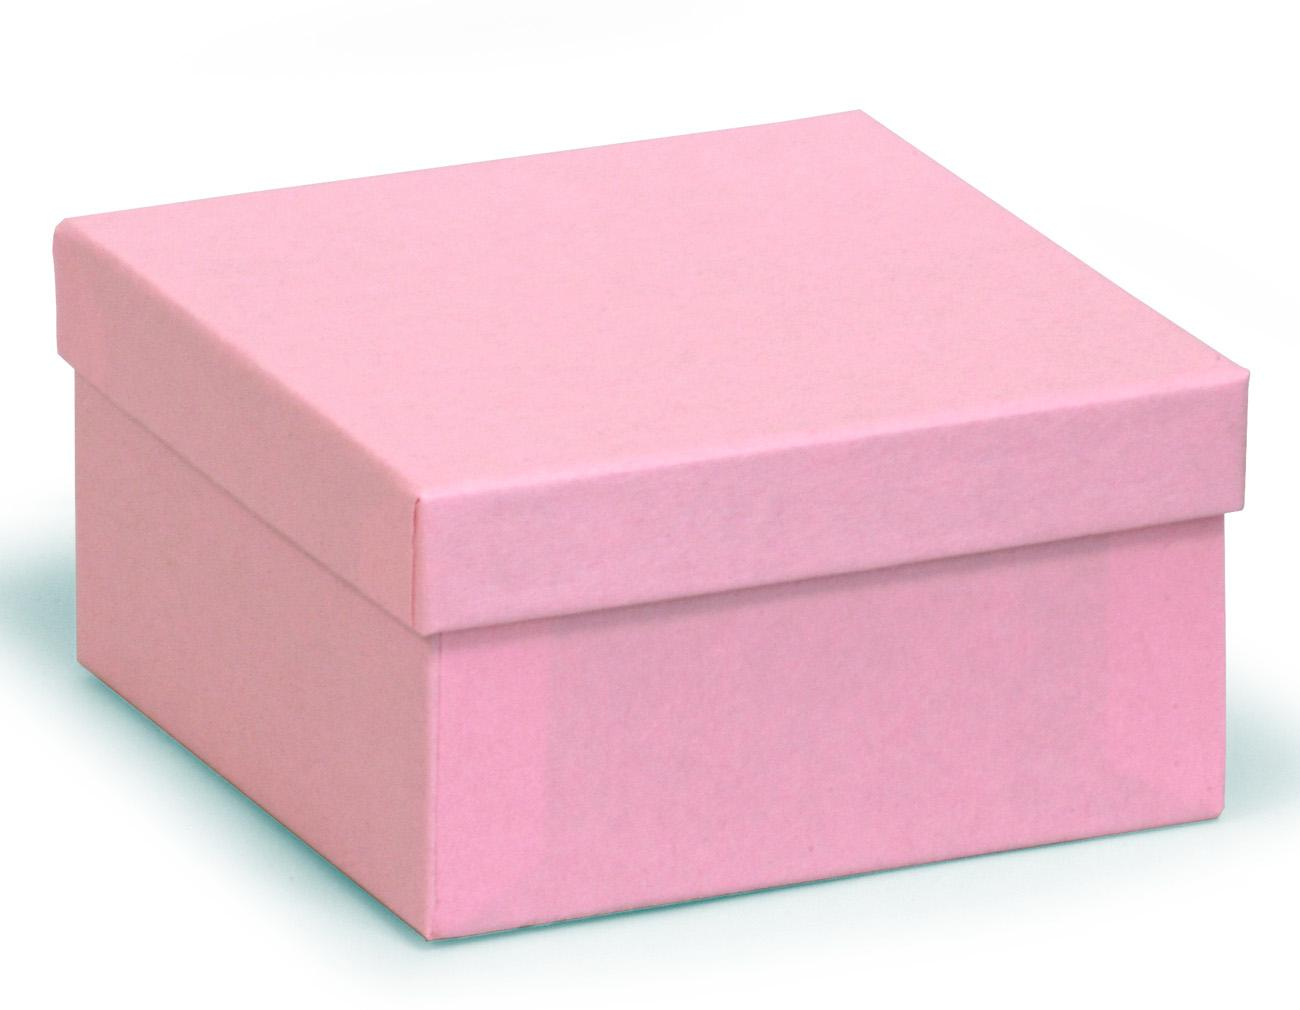 Ikea Bags Square Deeper Recycled Kraft Pink Box 89 X 89 X 51mm